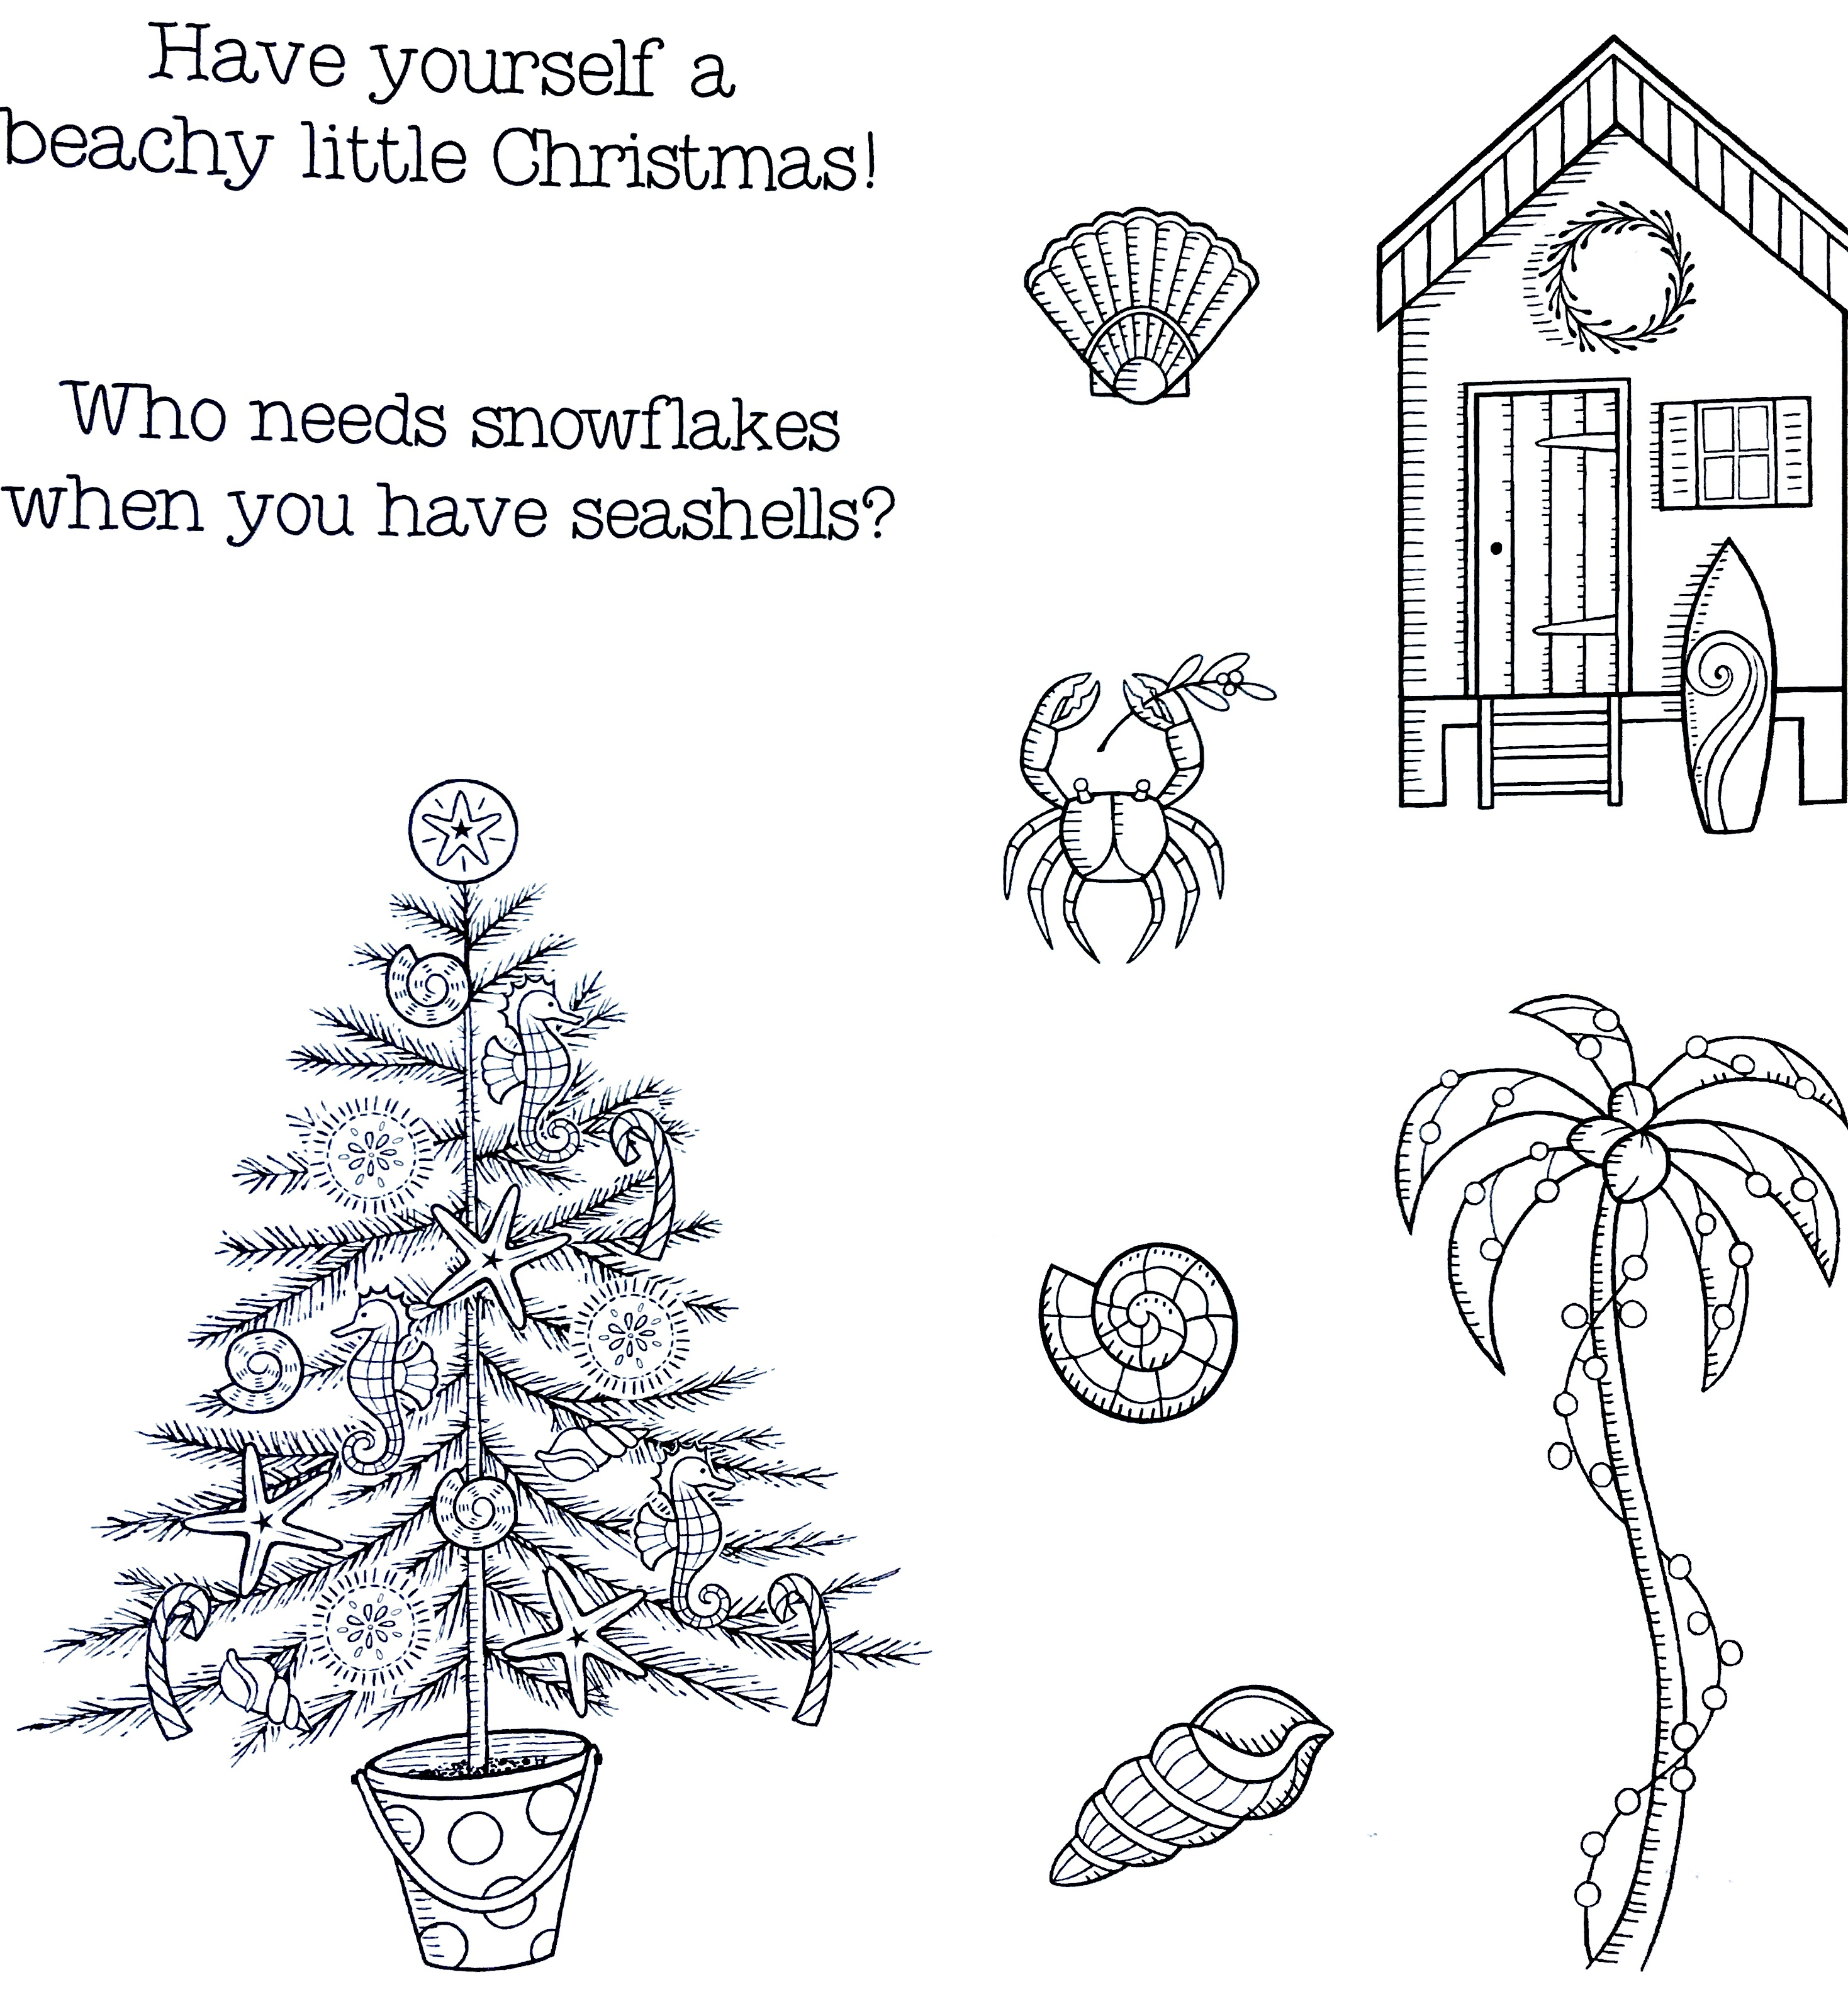 When Is Little Christmas.Beachy Little Christmas 3 H Made Boutique